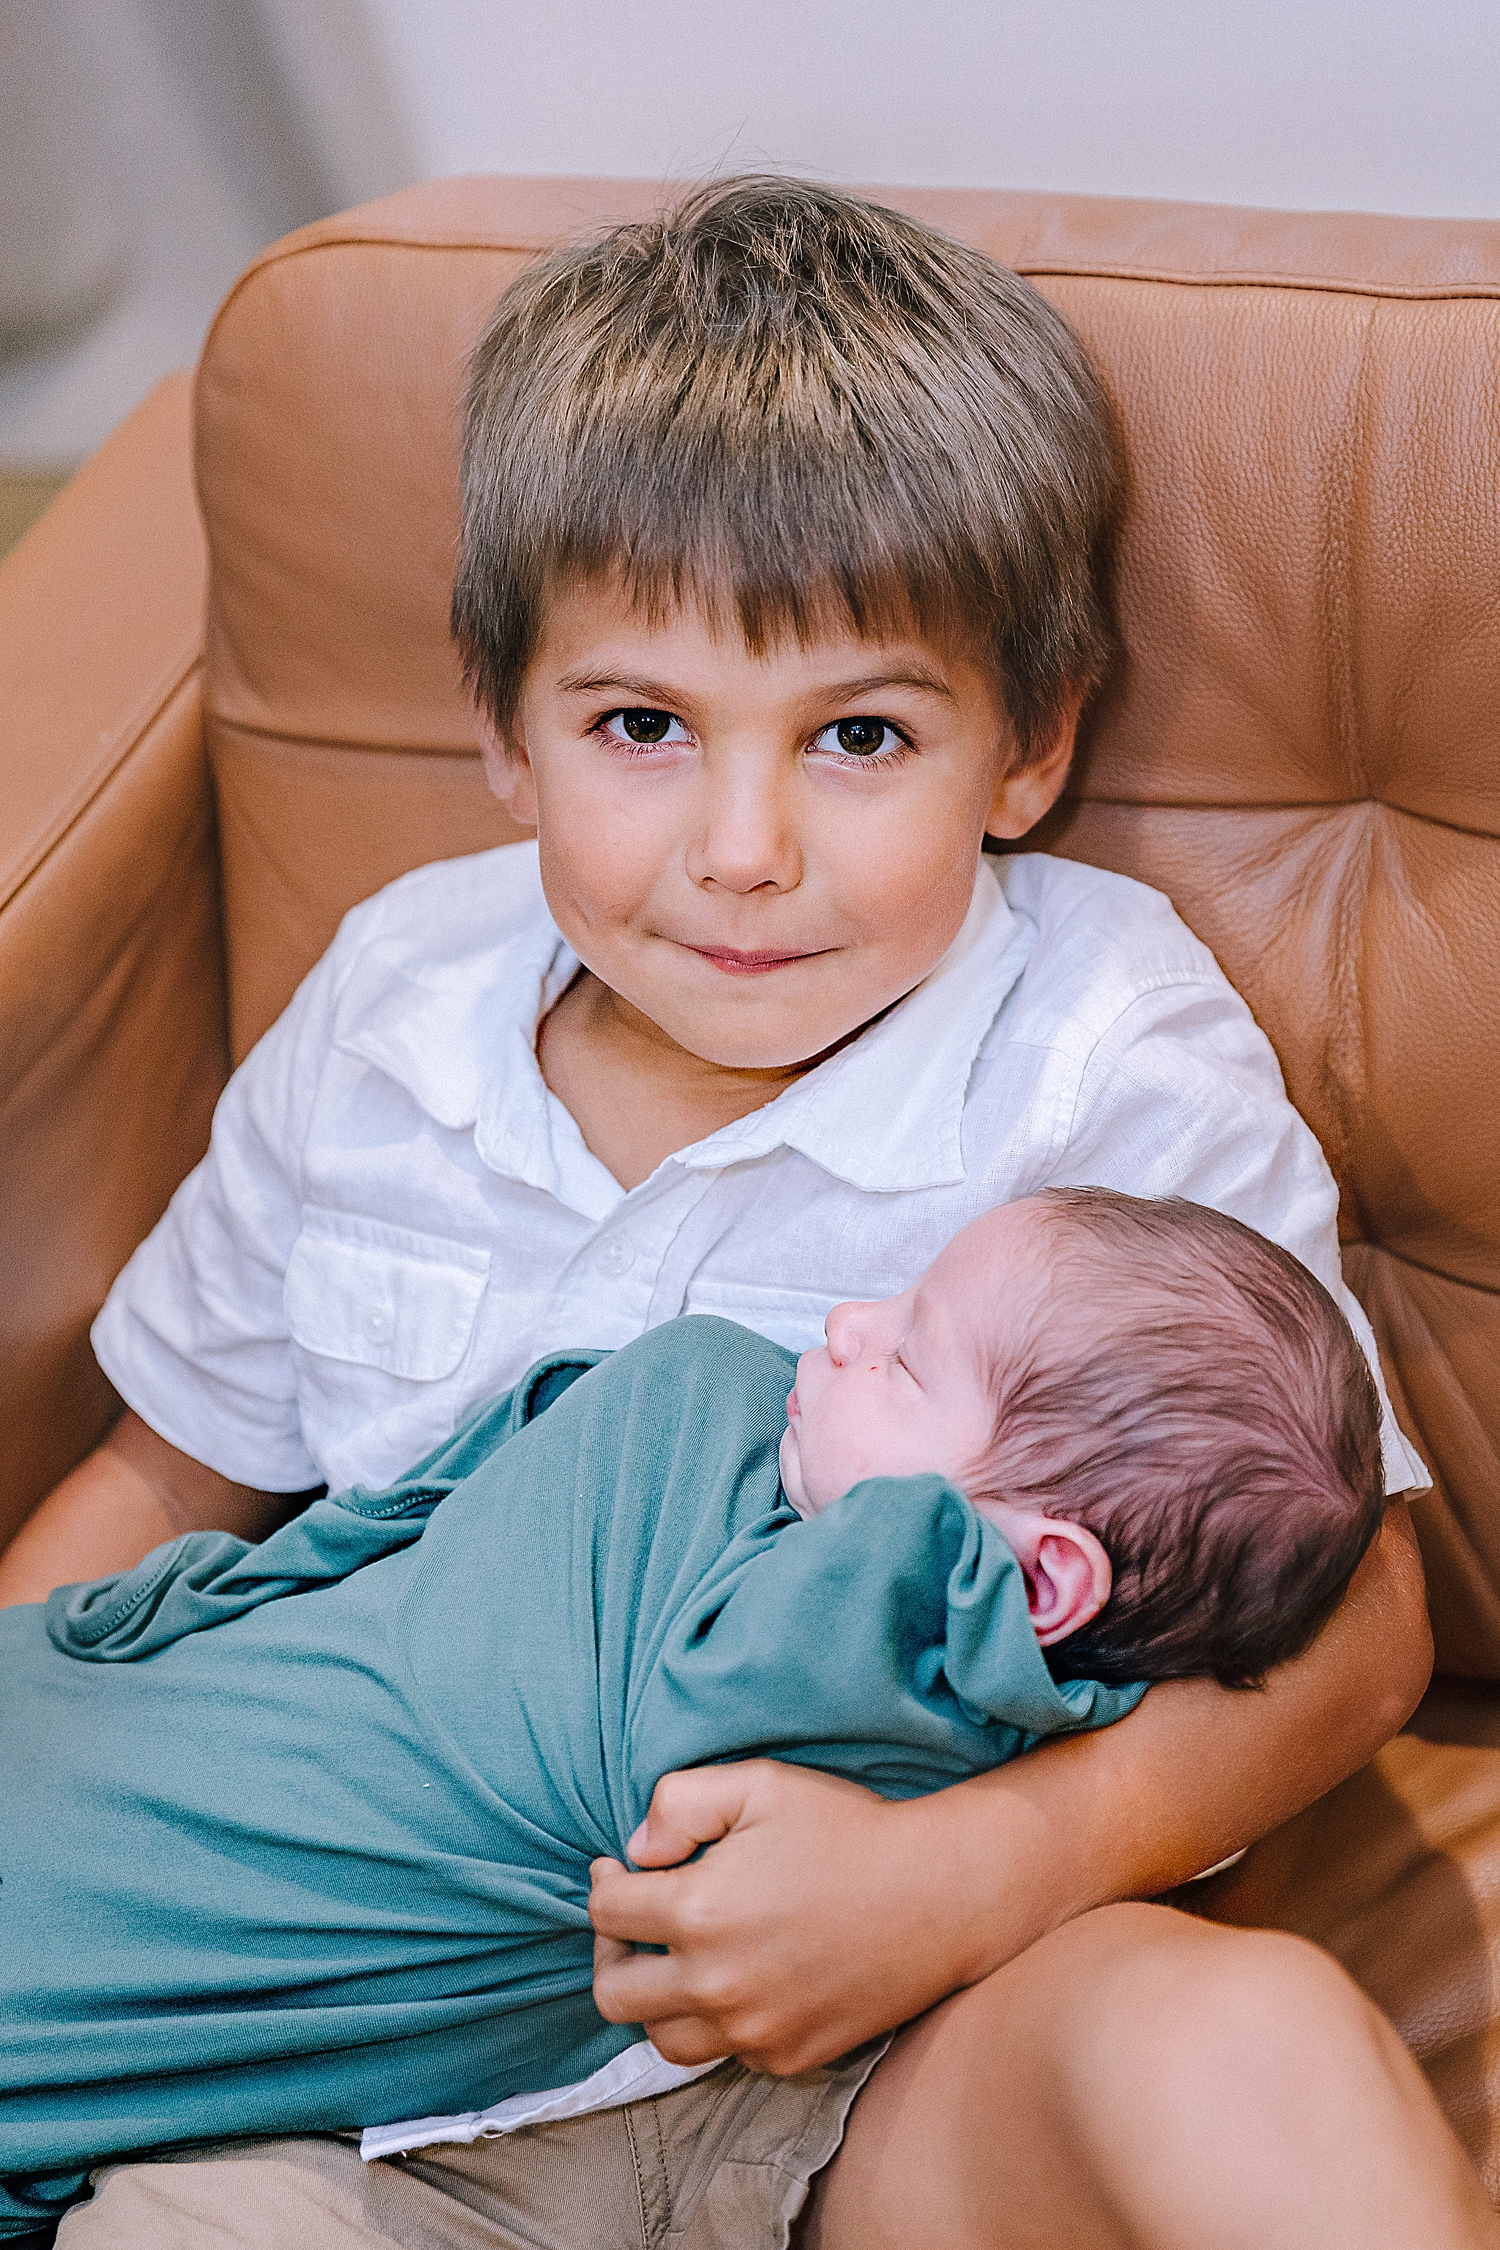 Carly-Barton-Photography-Lifestyle-Newborn-Photographer-Brothers-Family-Photos-Texas_0014.jpg